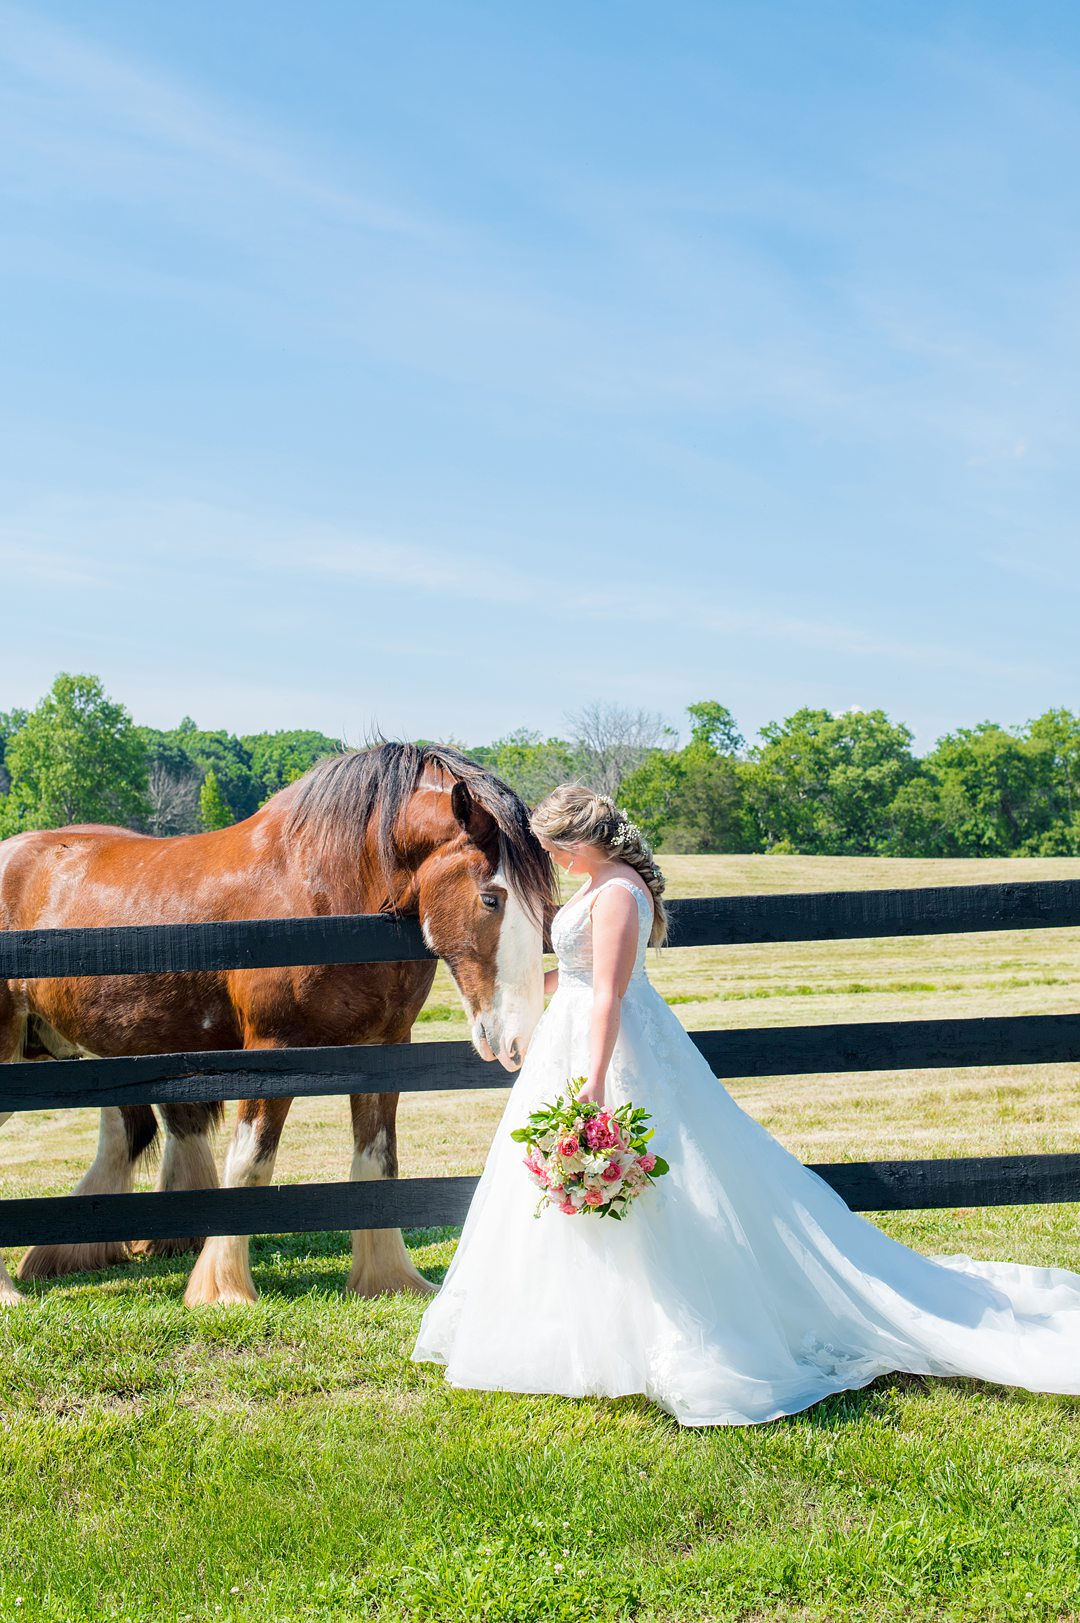 The bride enjoyed The Lodge at Mount Ida for her small wedding in Charlottesville Virginia partially because of the Clydesdale horses on property. Photos by Mikkel Paige Photography.